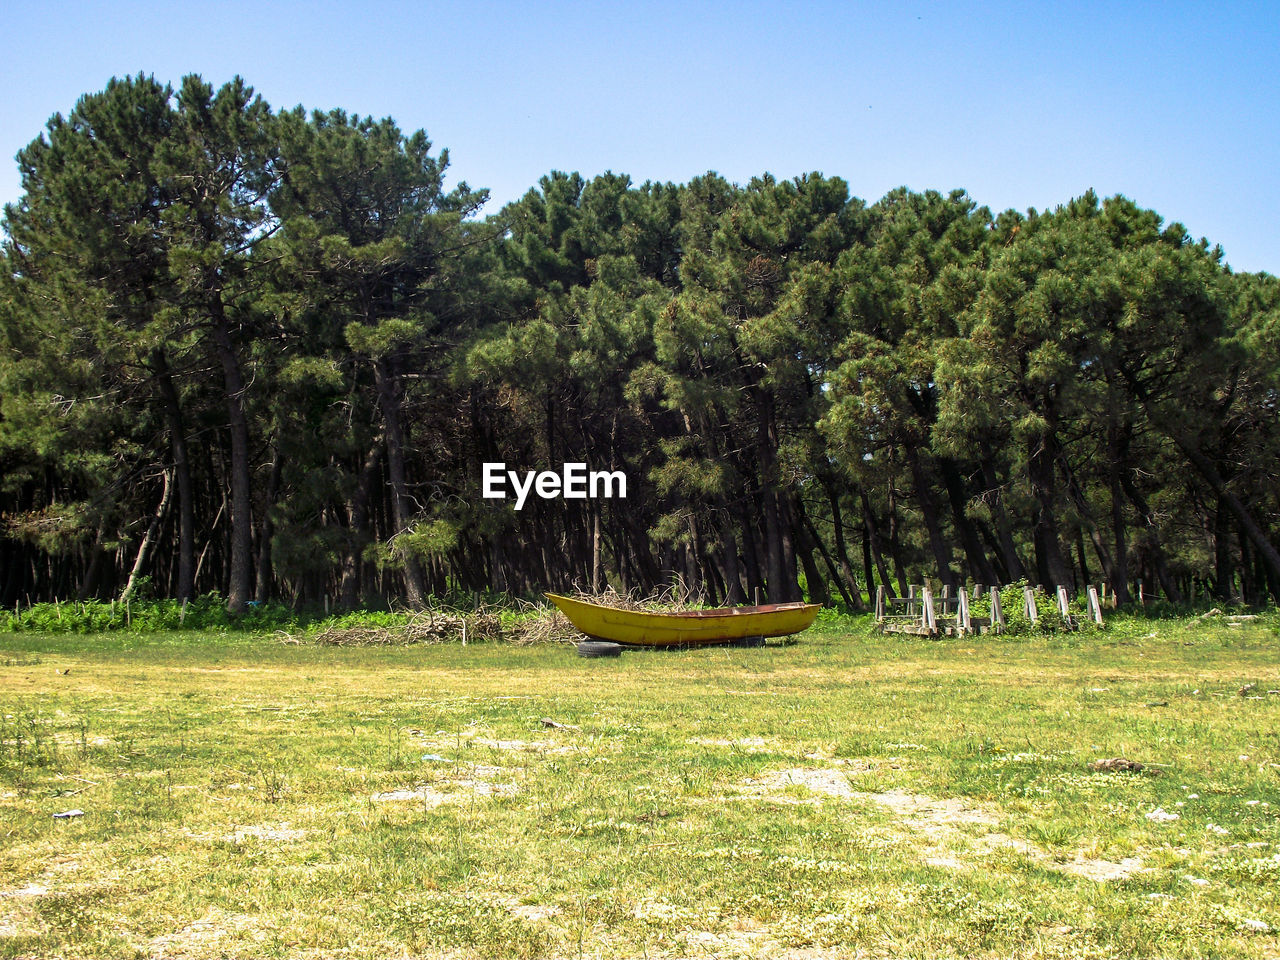 plant, tree, day, land, nature, grass, sky, growth, beauty in nature, field, green color, tranquility, nautical vessel, tranquil scene, no people, non-urban scene, outdoors, sunlight, scenics - nature, clear sky, rowboat